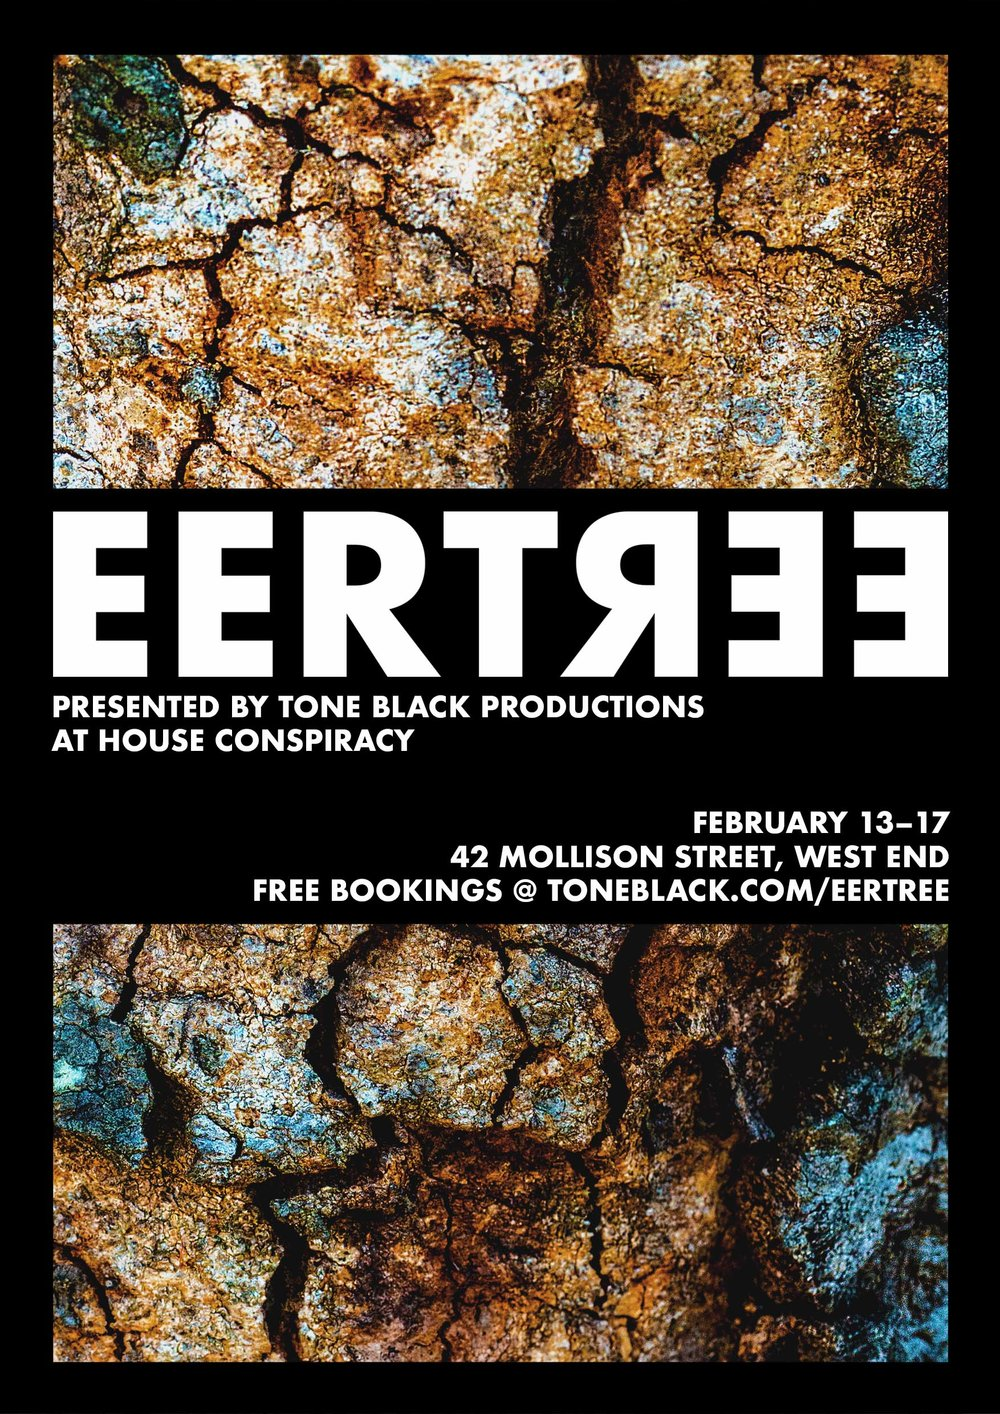 EERTREE - February 13–17, 2018EERTREE is an audio-focused show I co-wrote and produced for Tone Black Productions, under direction from Tony Brumpton.EERTREE's first season was successfully sold out.Responsibilities: writing, design, marketing, and venue logistics.